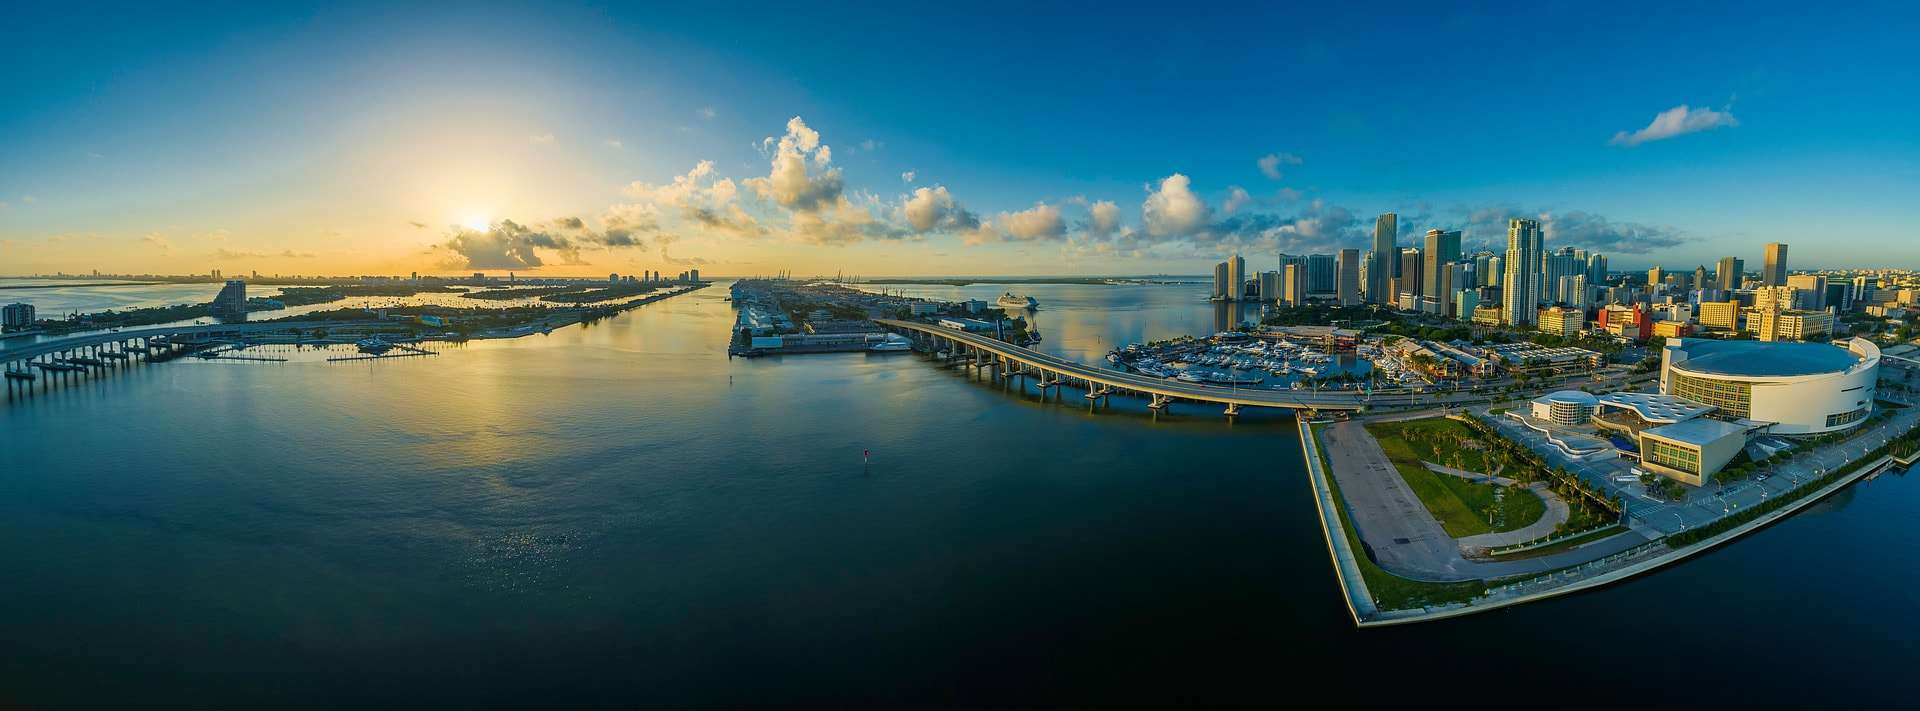 Miami On The Cheap >> Miami On A Budget Find Out How To Save Big Planning The Magic